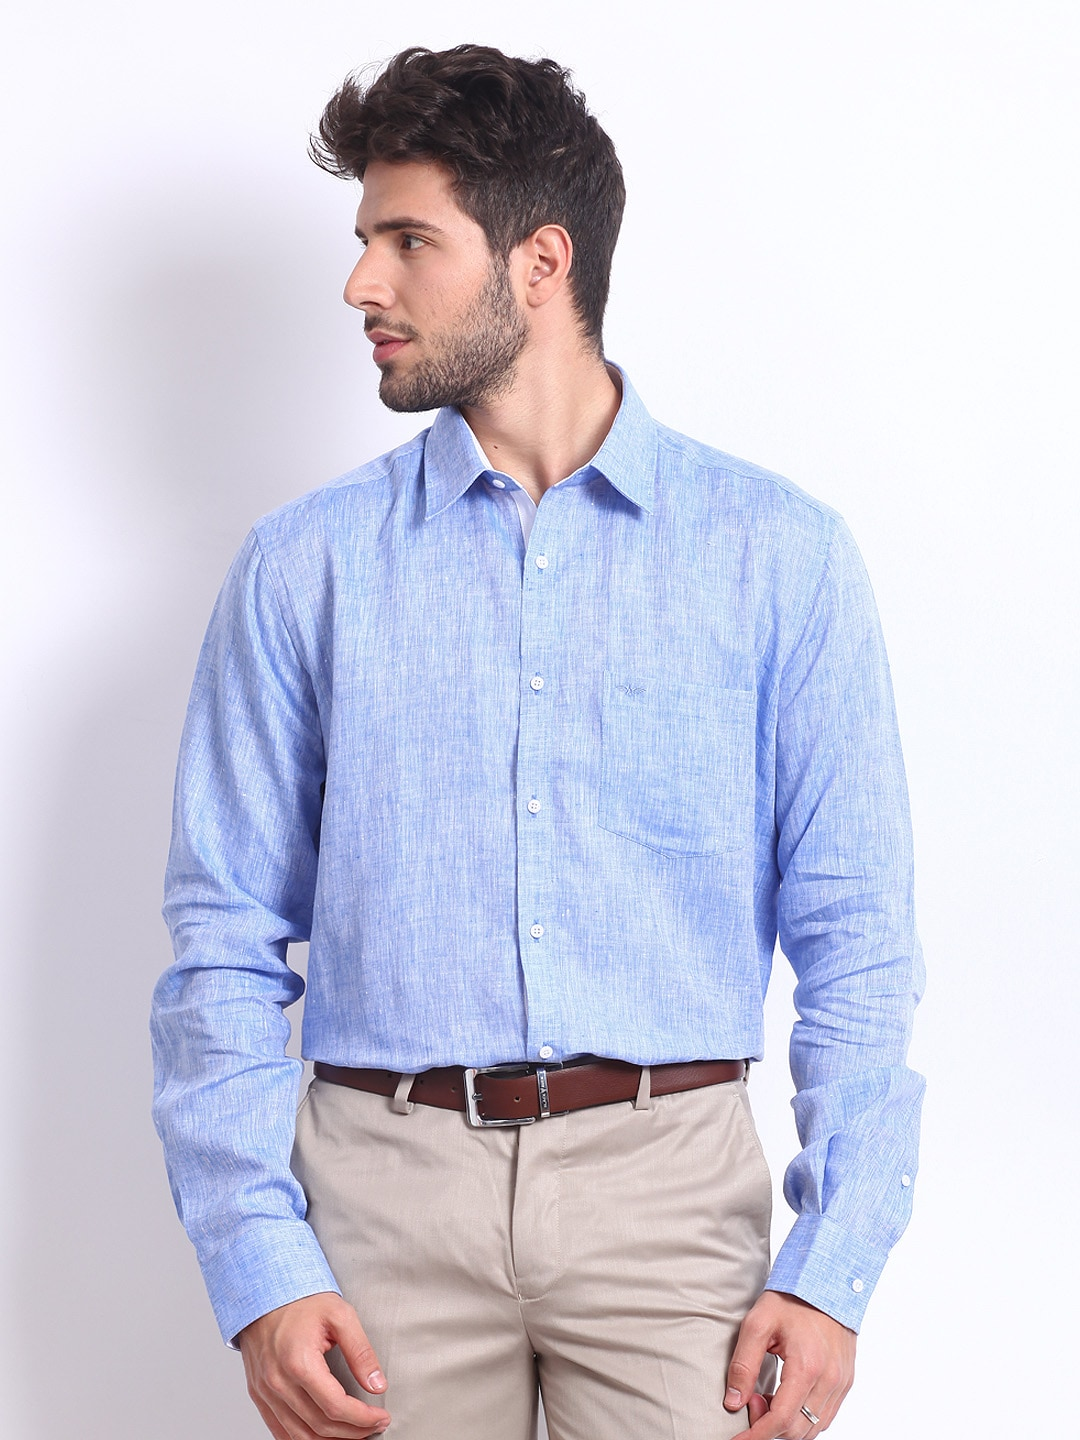 Buy Pure Linen Shirts Online India Bcd Tofu House